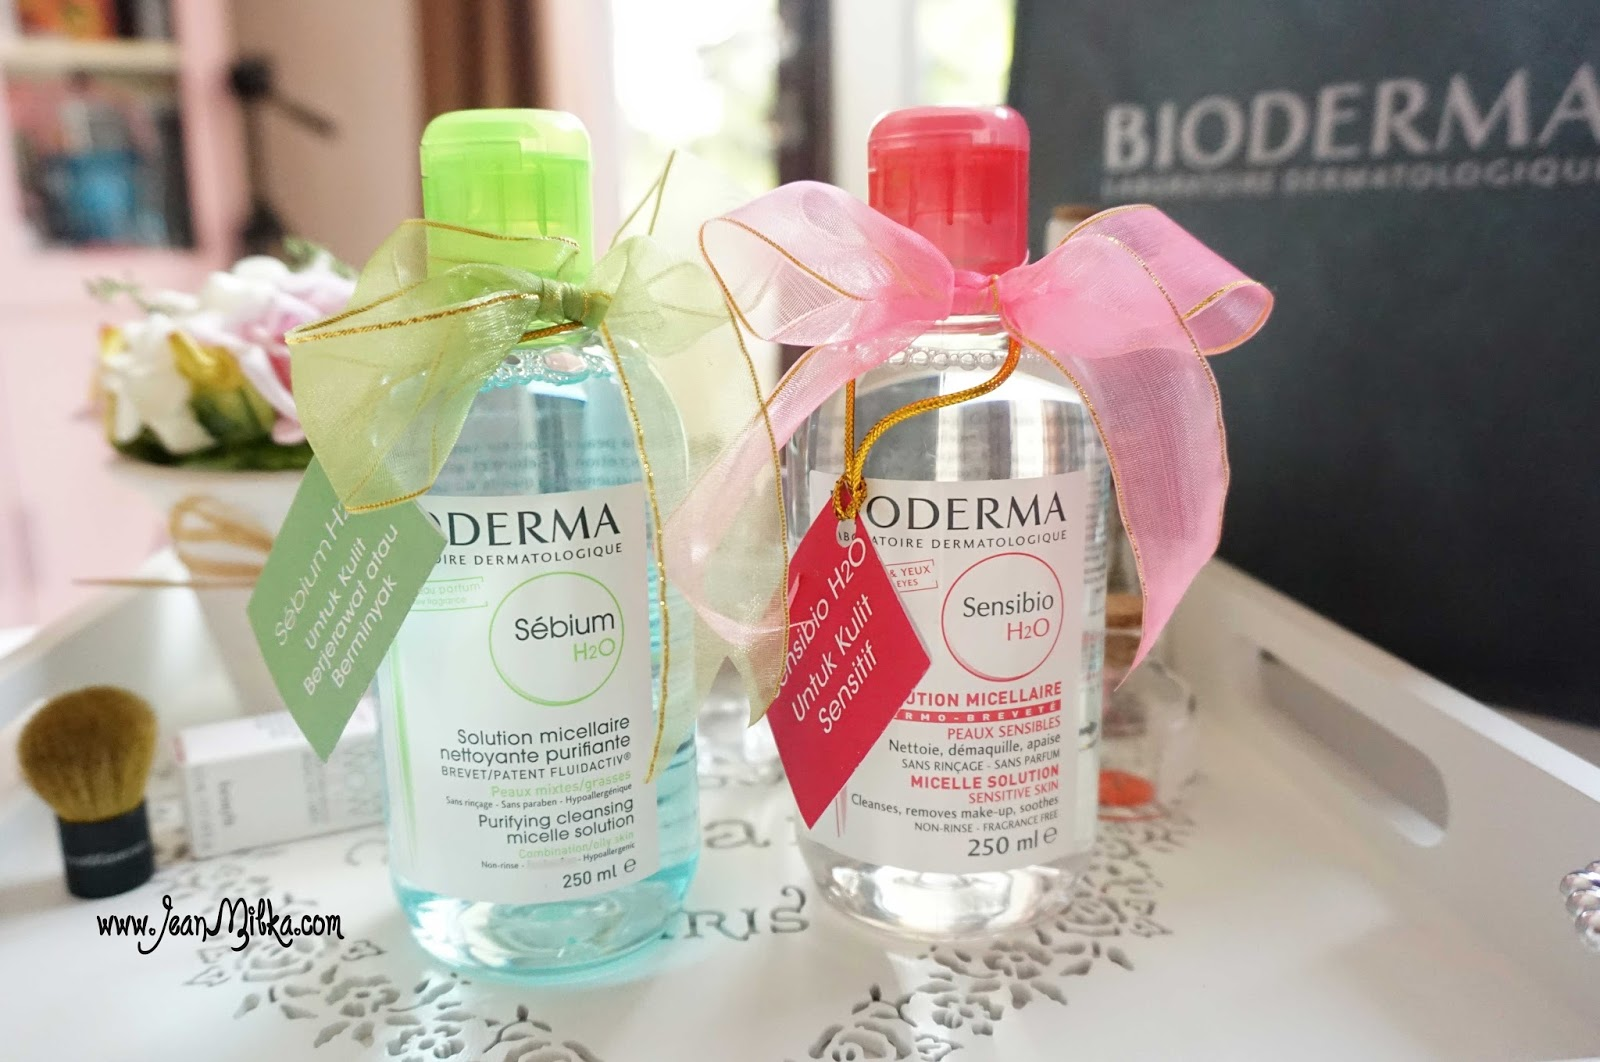 Bioderma Sebium and Sensibio H2O